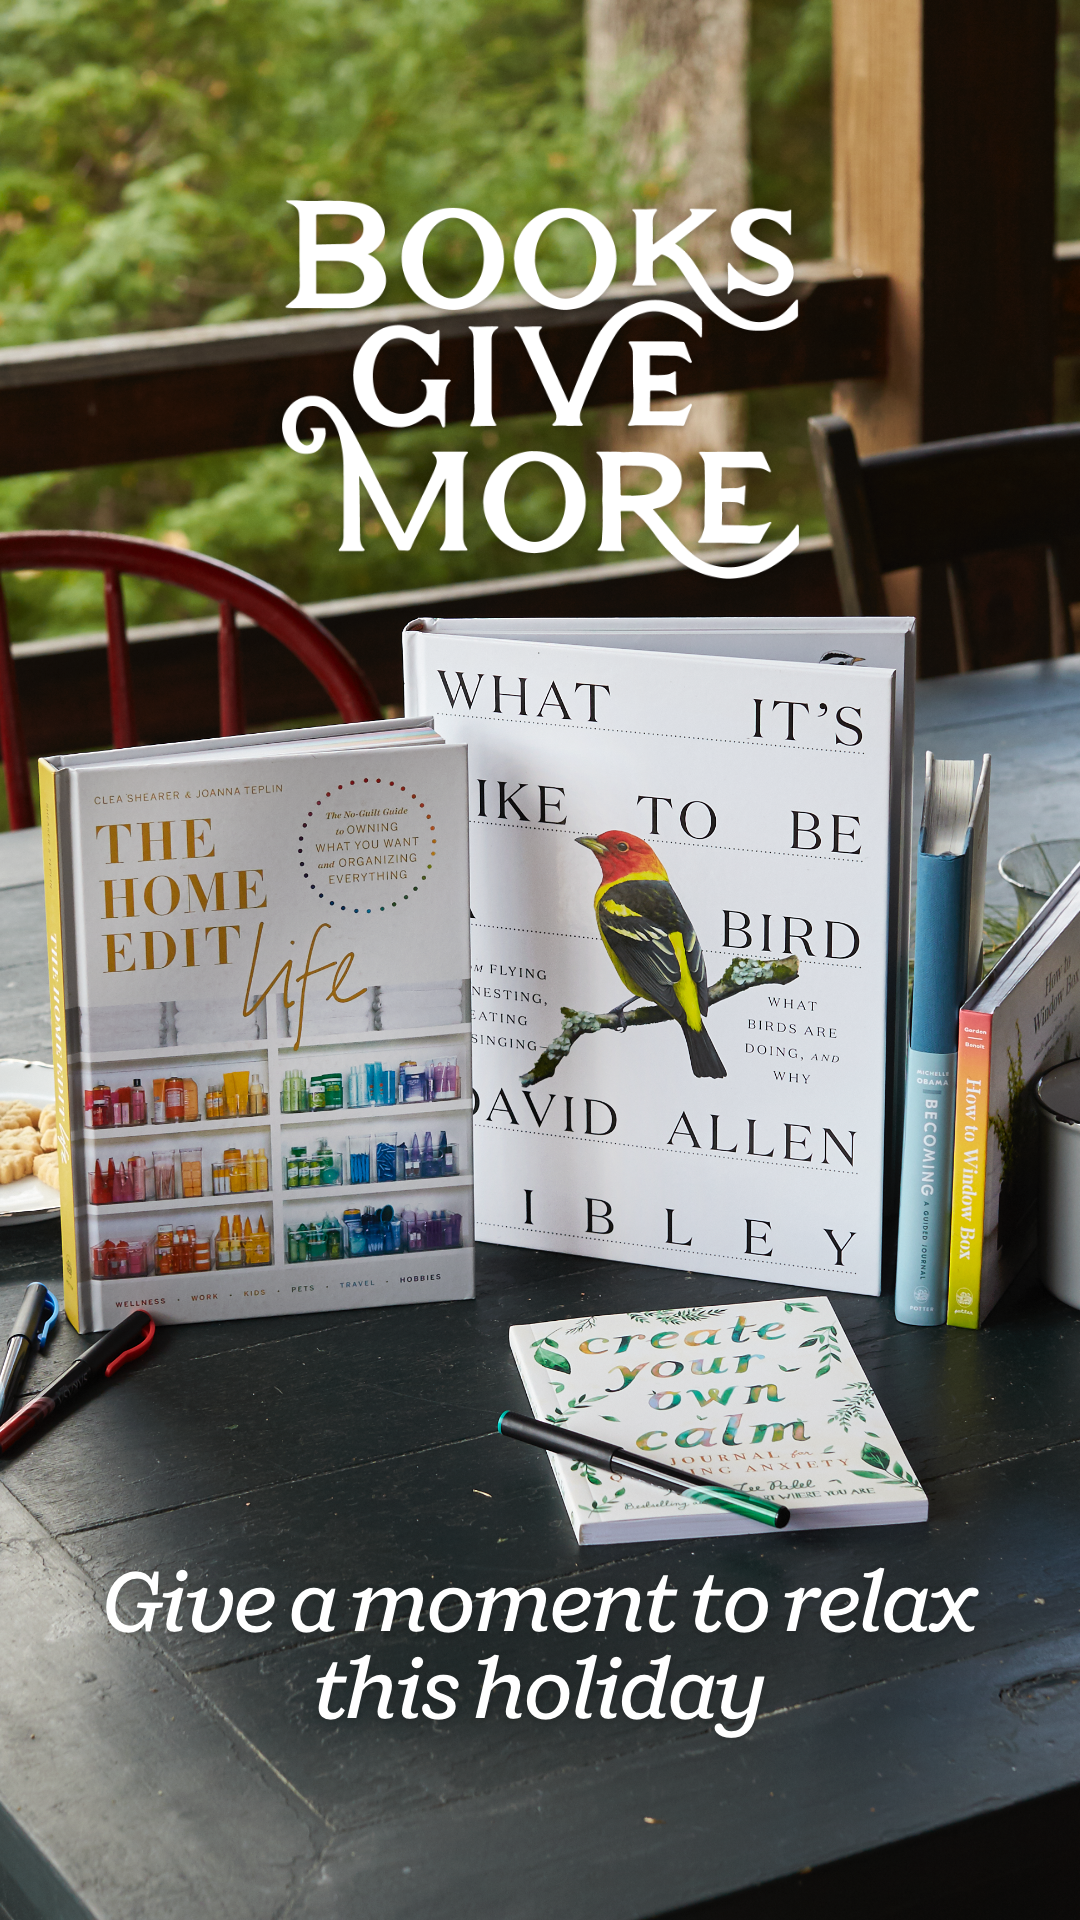 Give the gift everyone wants this holiday season: a moment to relax. Whether it's a cluttered mind or closet, these books let readers take a step back and find moments of calm. From What It's Like to Be a Bird by David Sibley to The Home Edit: Life to Becoming: A Guided Journal for Discovering Your Voice by Michelle Obama, find peace and inspiration in these pages.